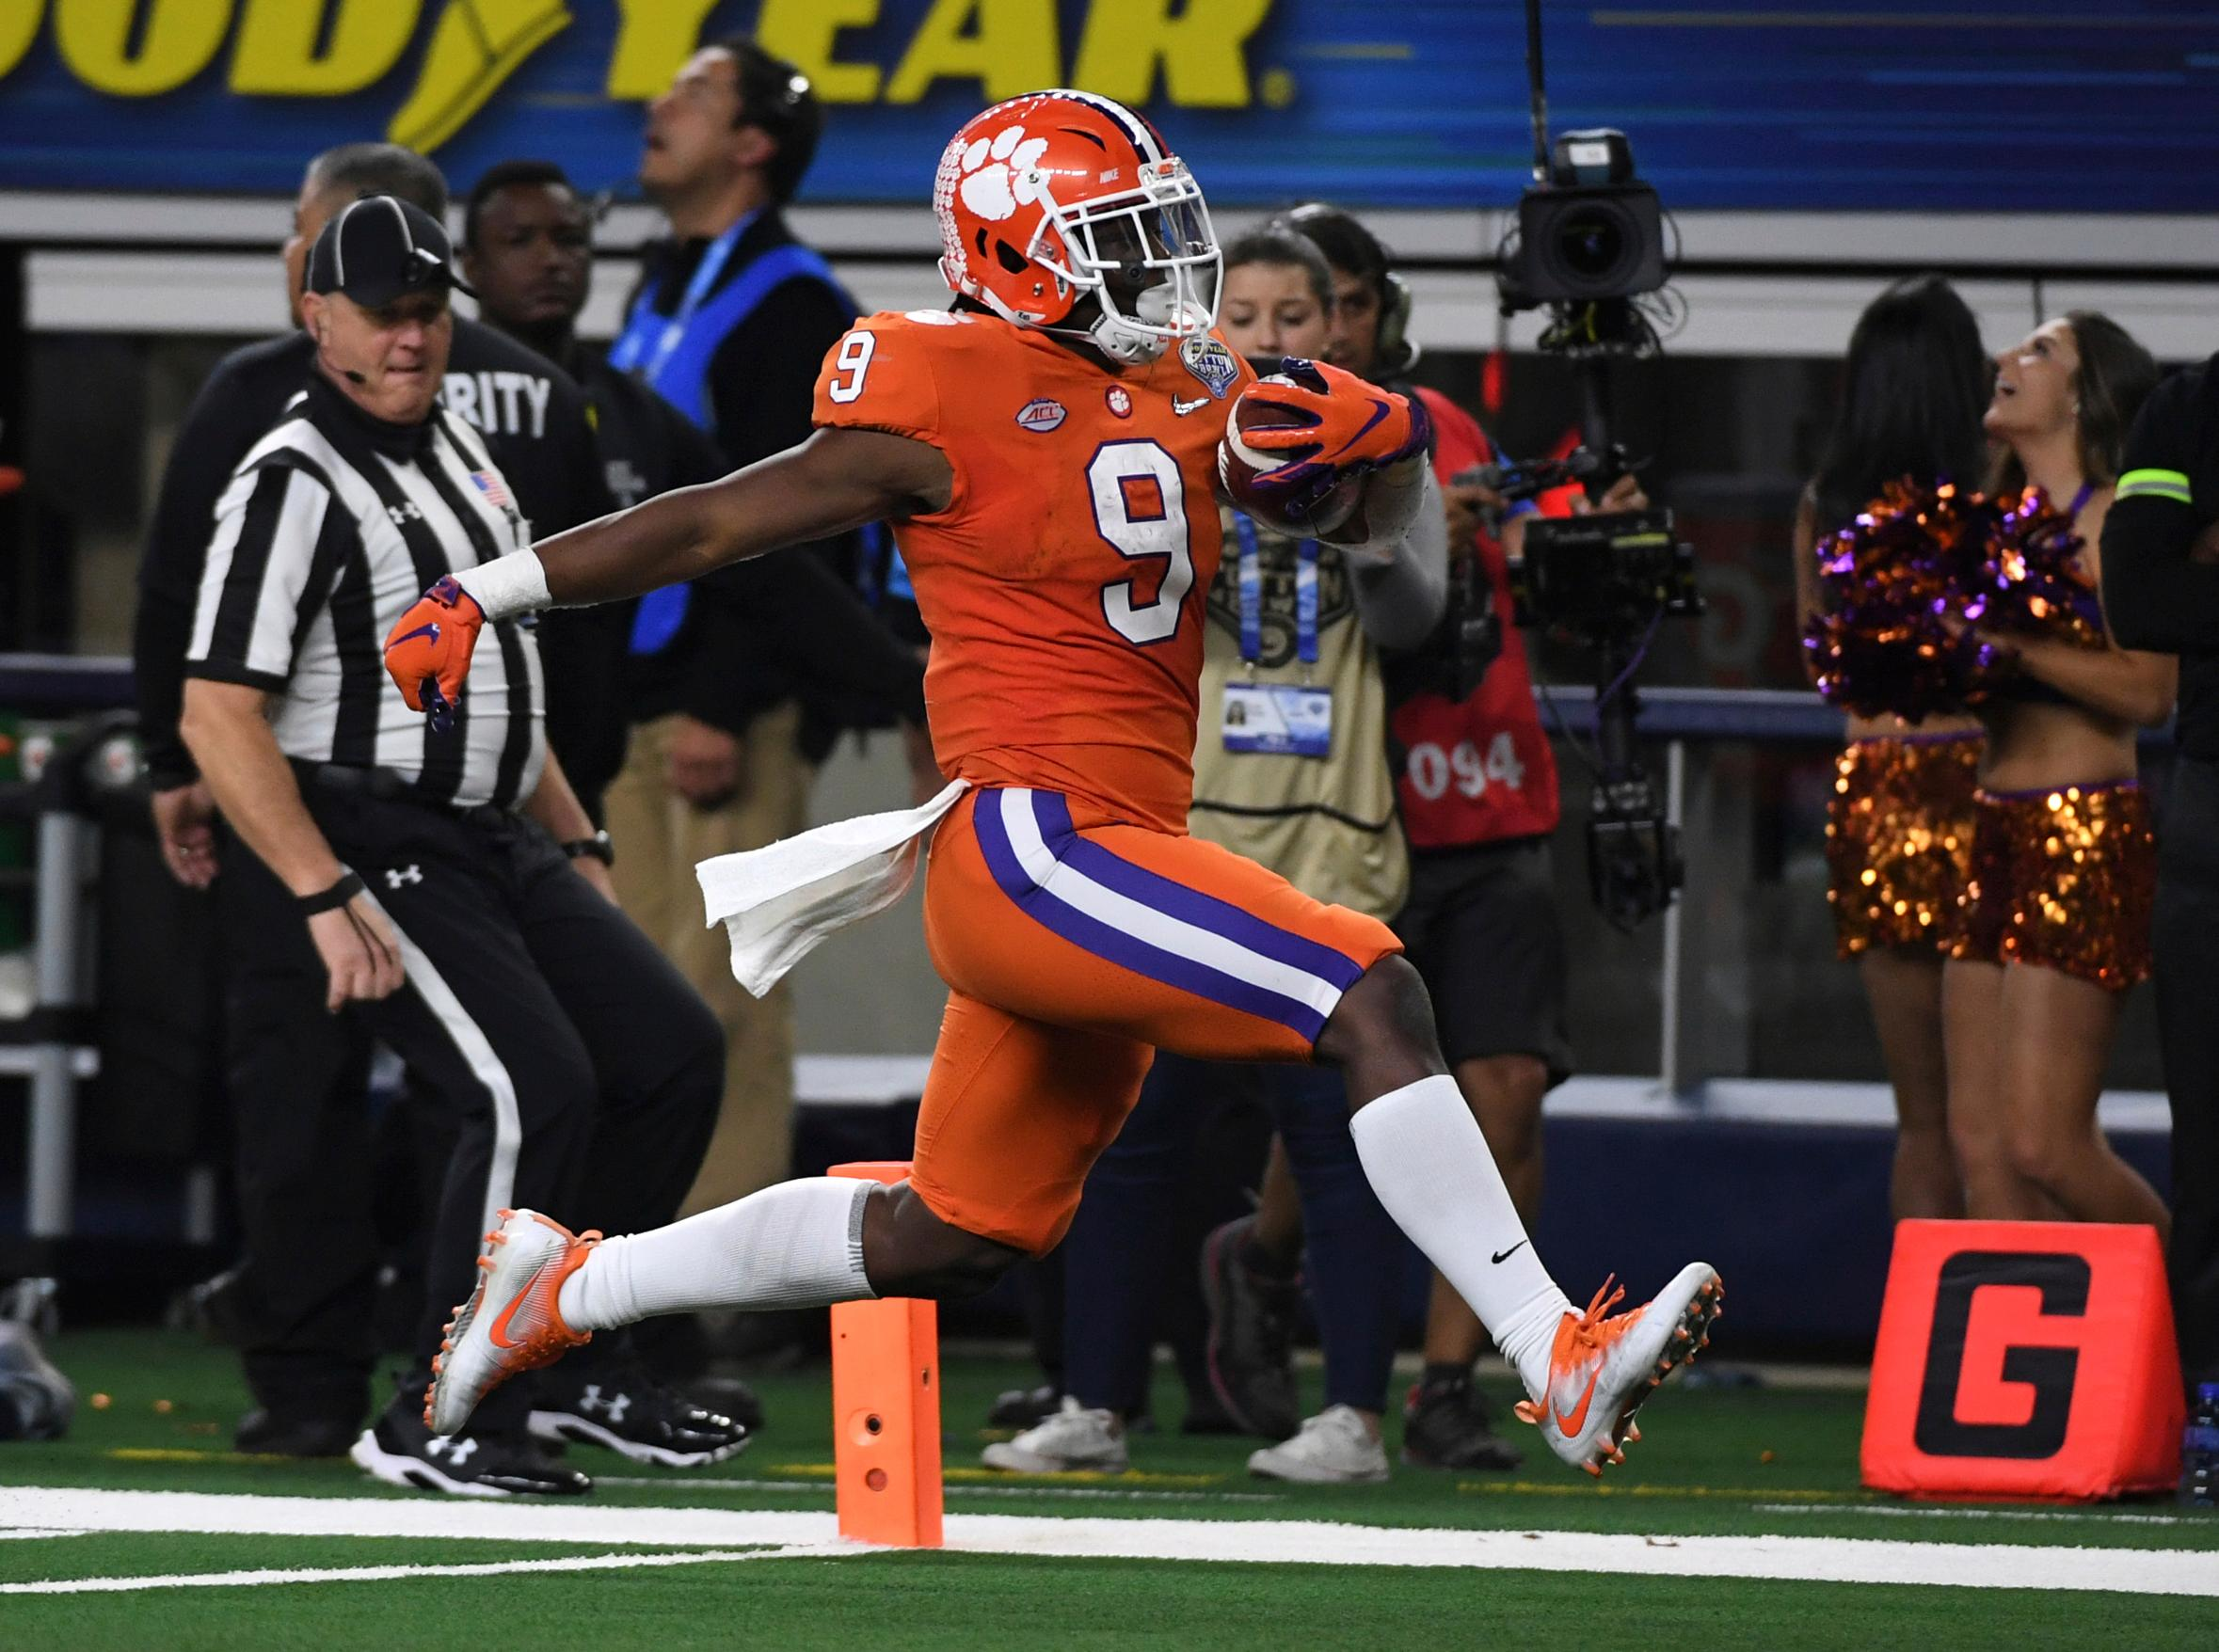 Clemson running back Travis Etienne (9) sprints into the end zone for a touchdown in the second half of the NCAA Cotton Bowl semi-final playoff football game against Notre Dame on Saturday, Dec. 29, 2018, in Arlington, Texas. (AP Photo/Jeffrey McWhorter)